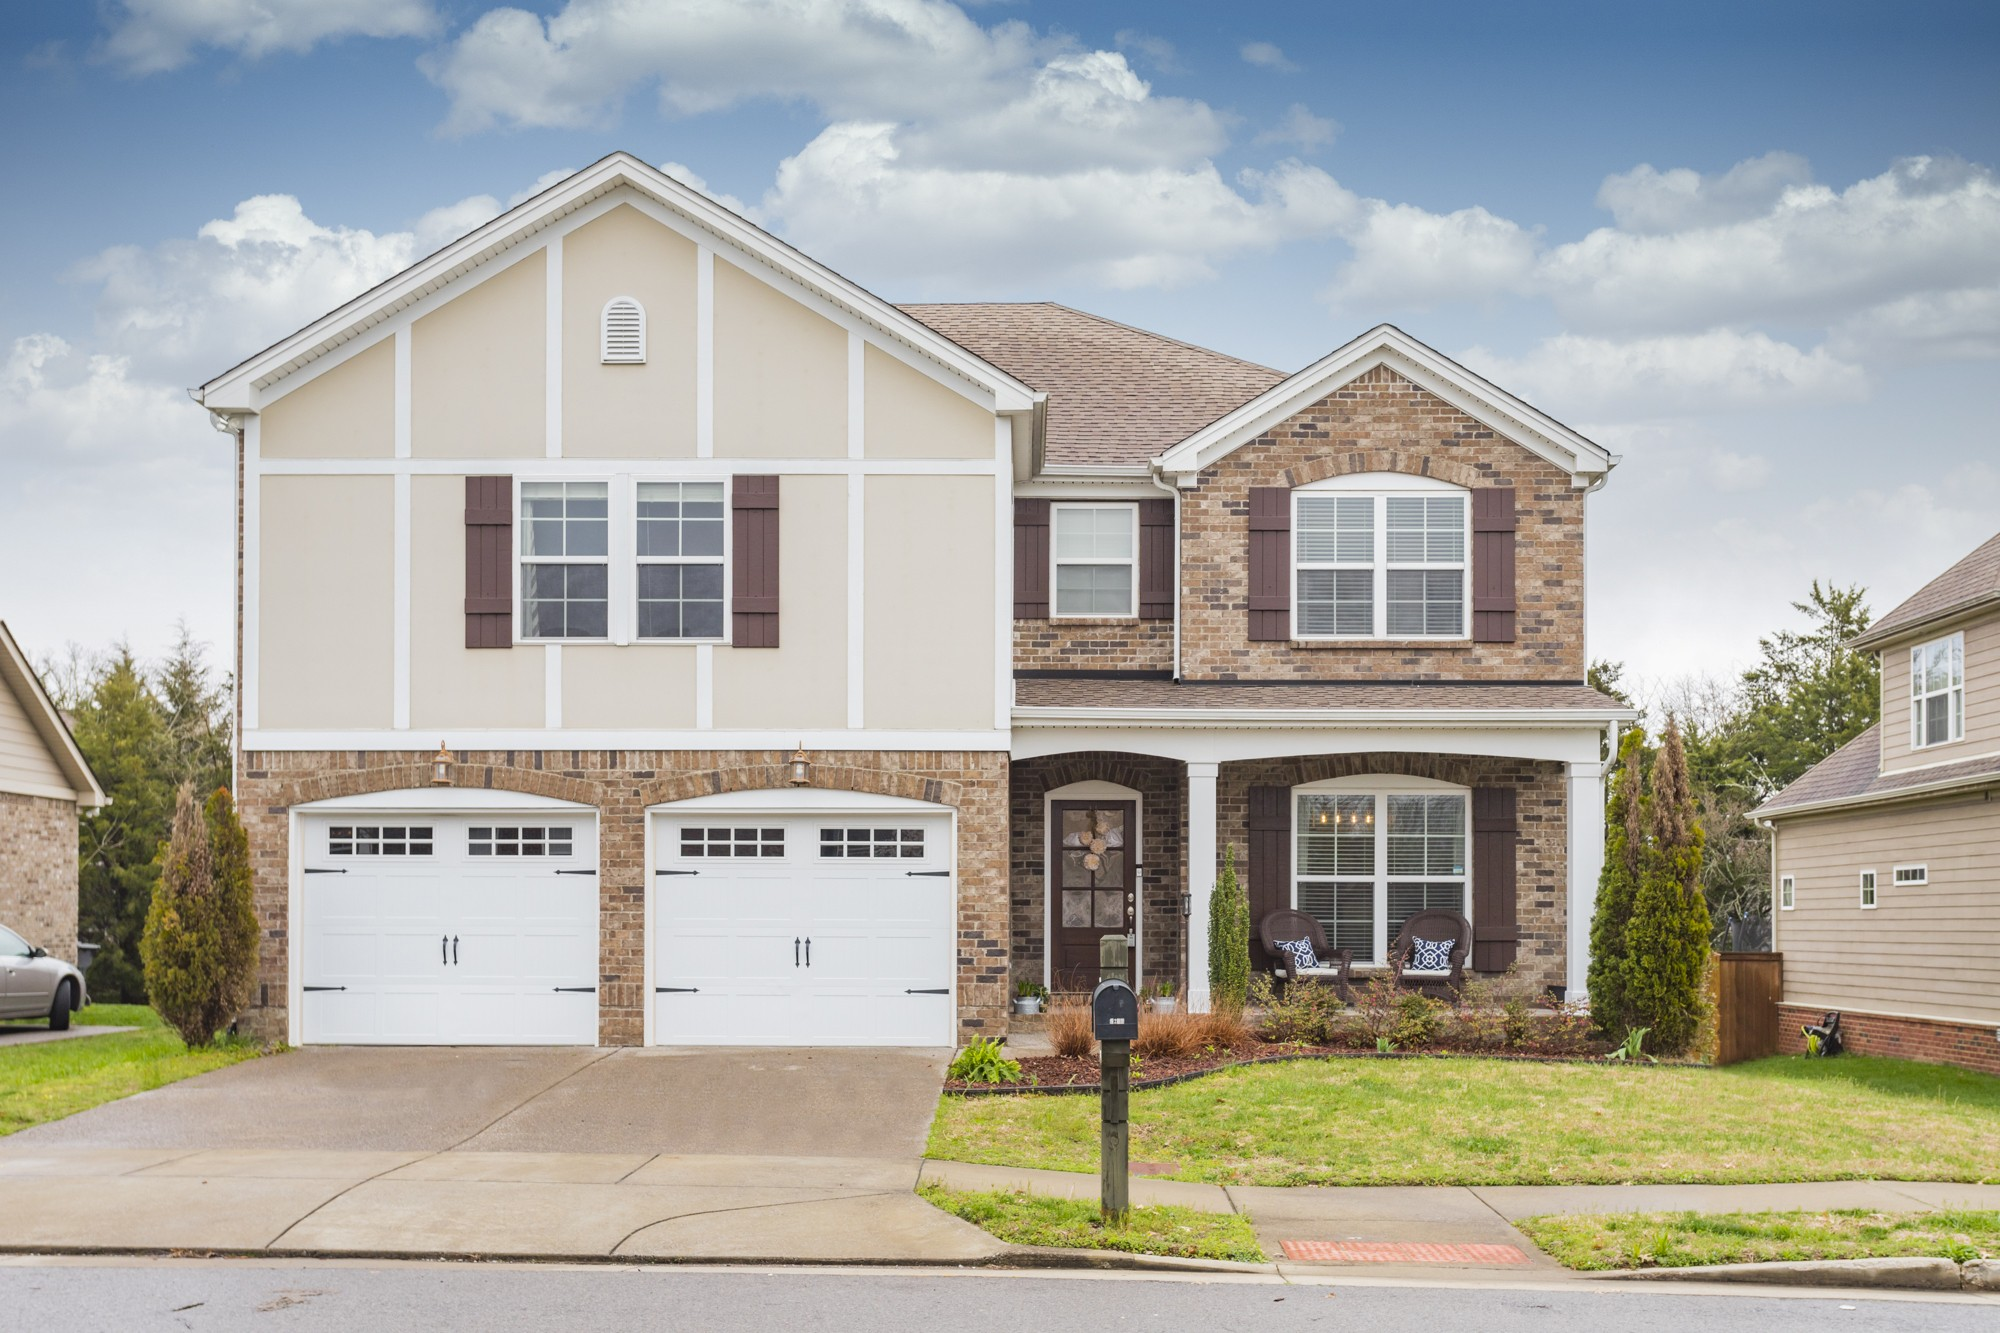 8209 Middlewick Ln Property Photo - Nolensville, TN real estate listing